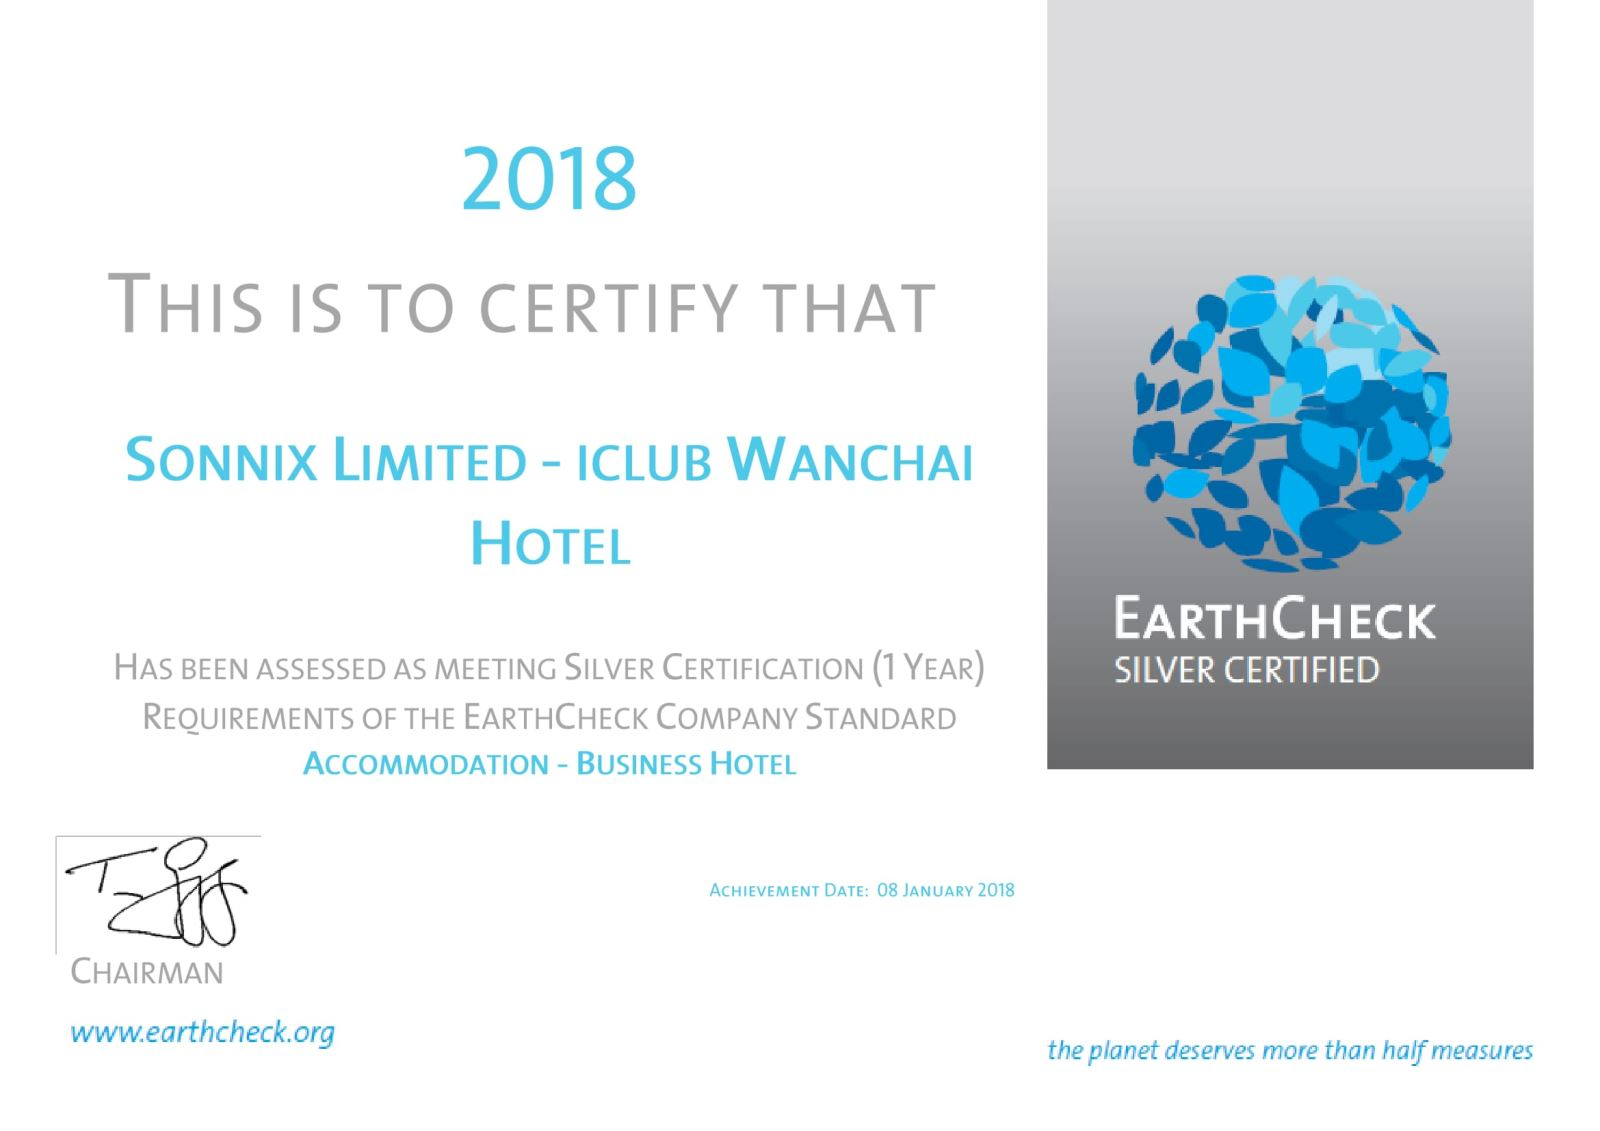 EarthCheck Certified, Silver 2018